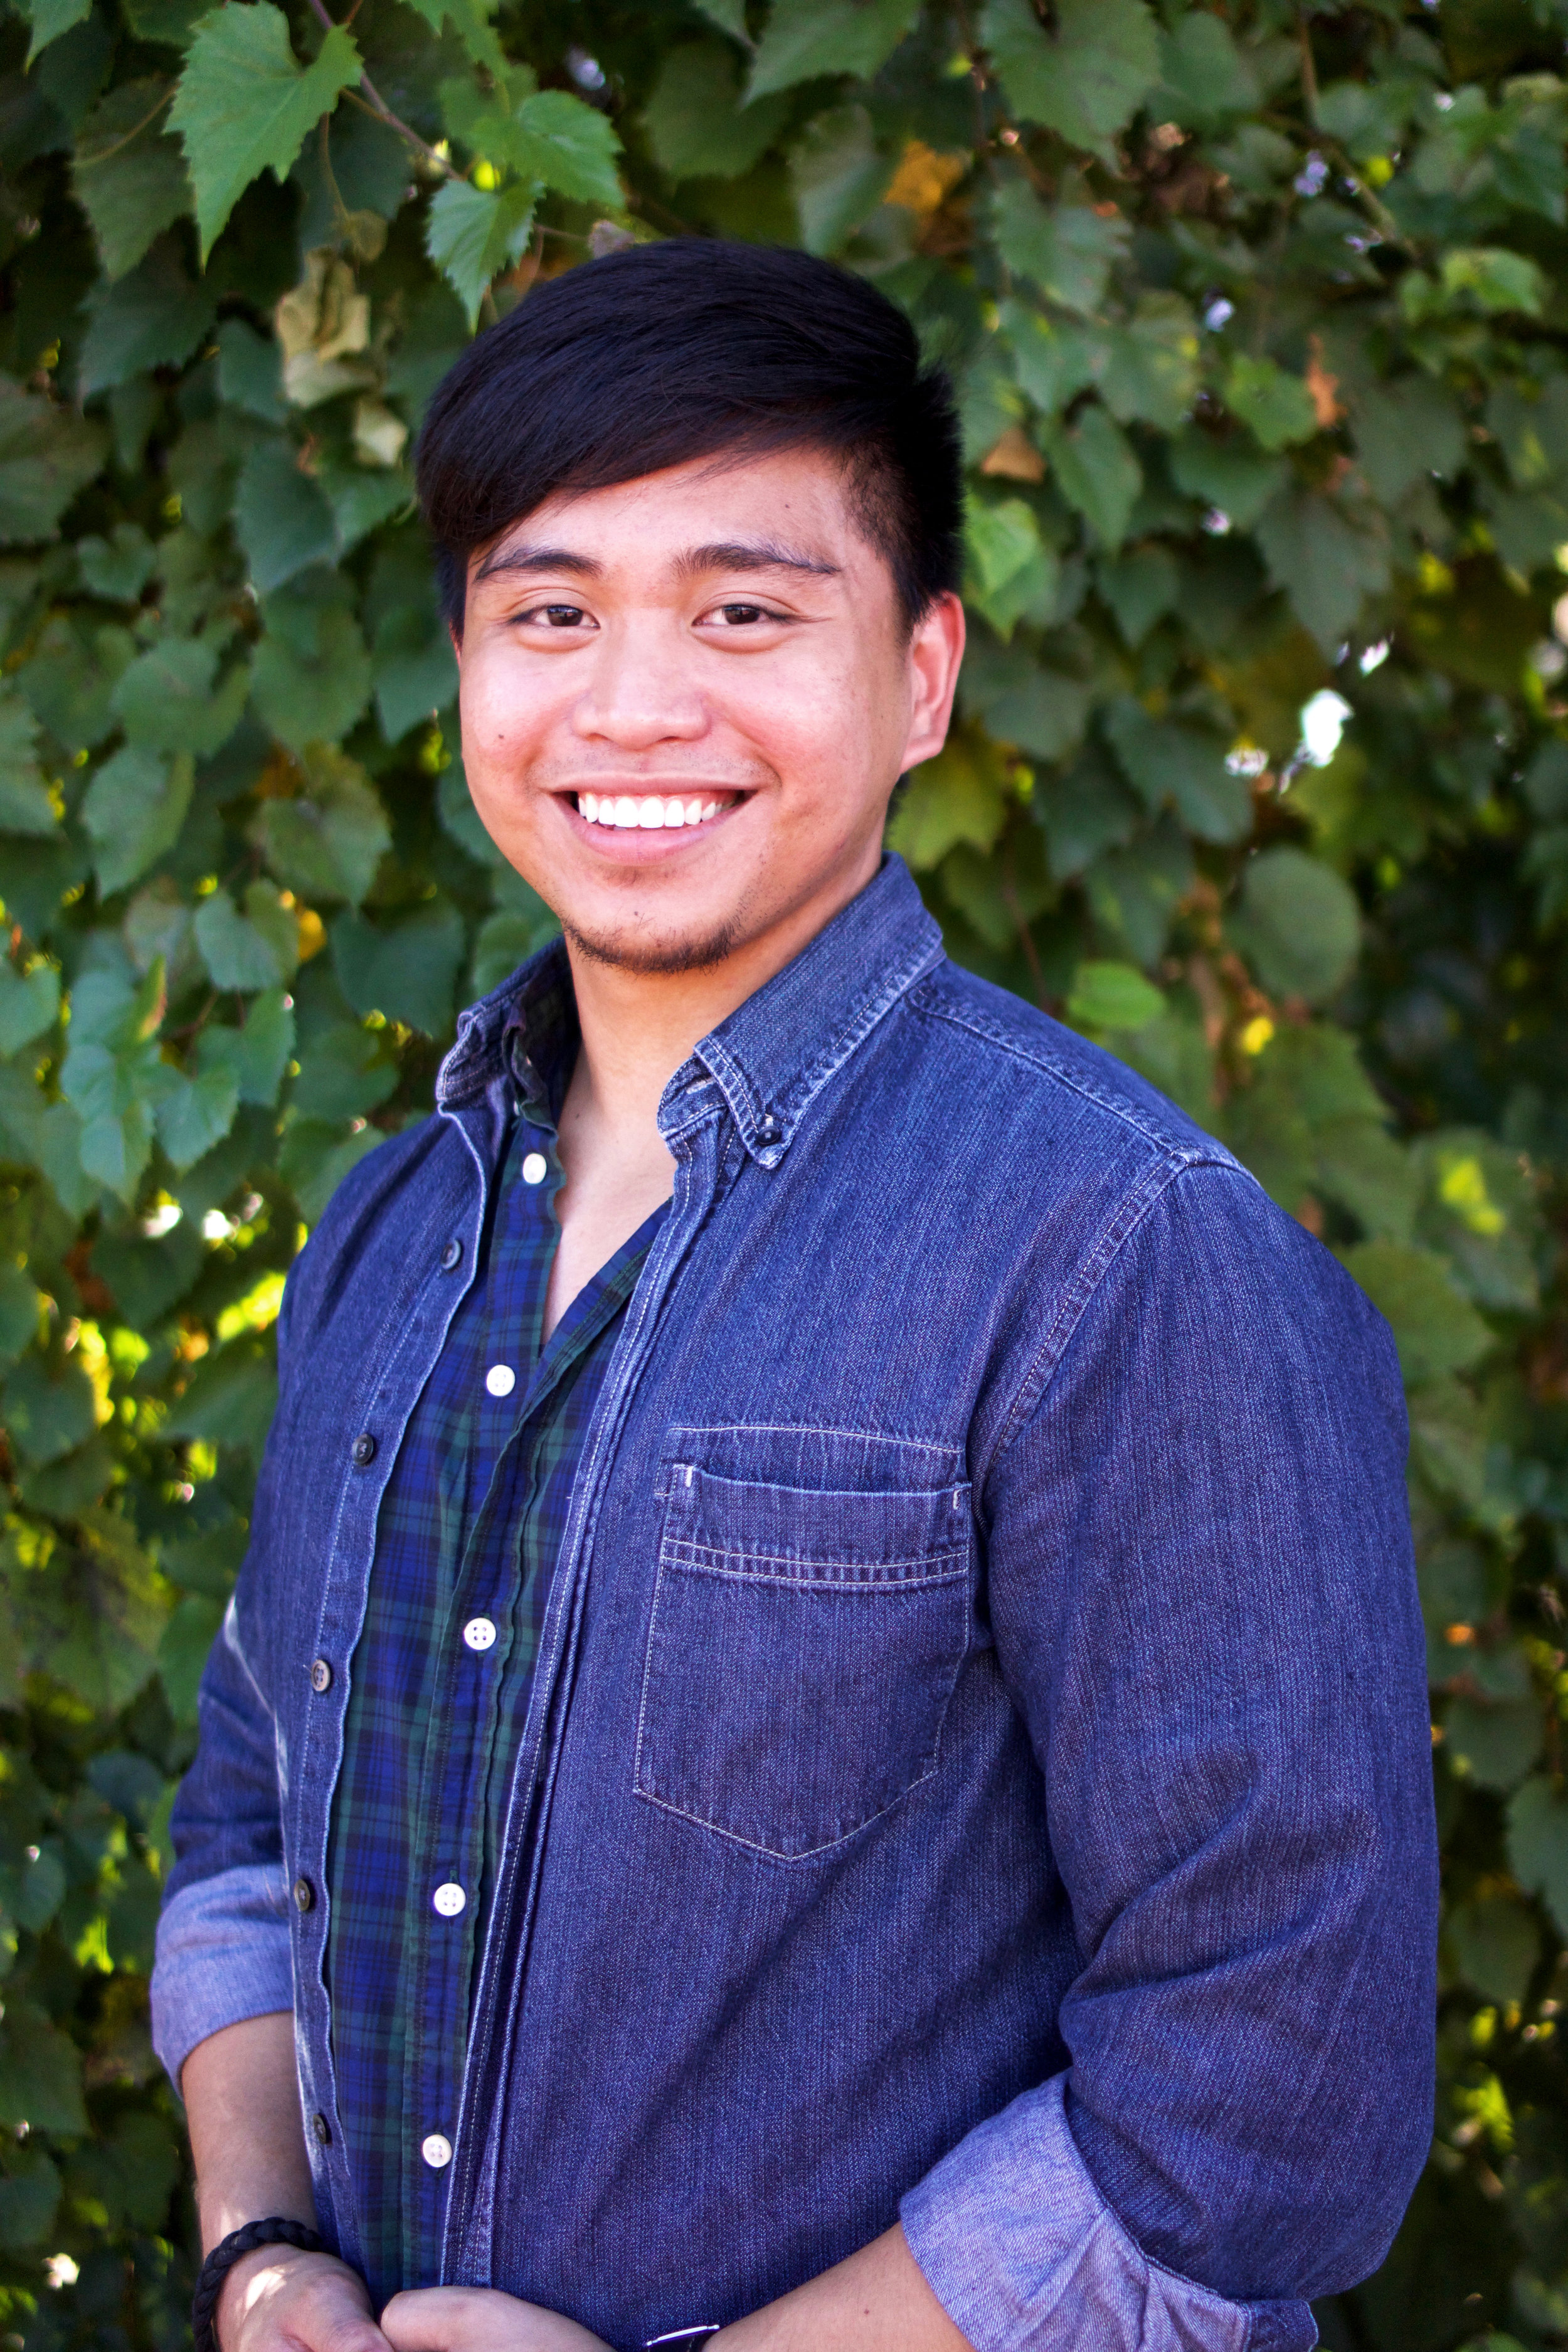 Gabriel Vallangca - Rep   Hello! I'm Gabe from UMCP! When I'm not dying with Computer Science and Asian American Studies, I am usually in the gym trying to look beautiful, pretending to be a rockstar with my guitar, trying to be part of Luffy's crew, or adoring endless videos of cute PUGS!